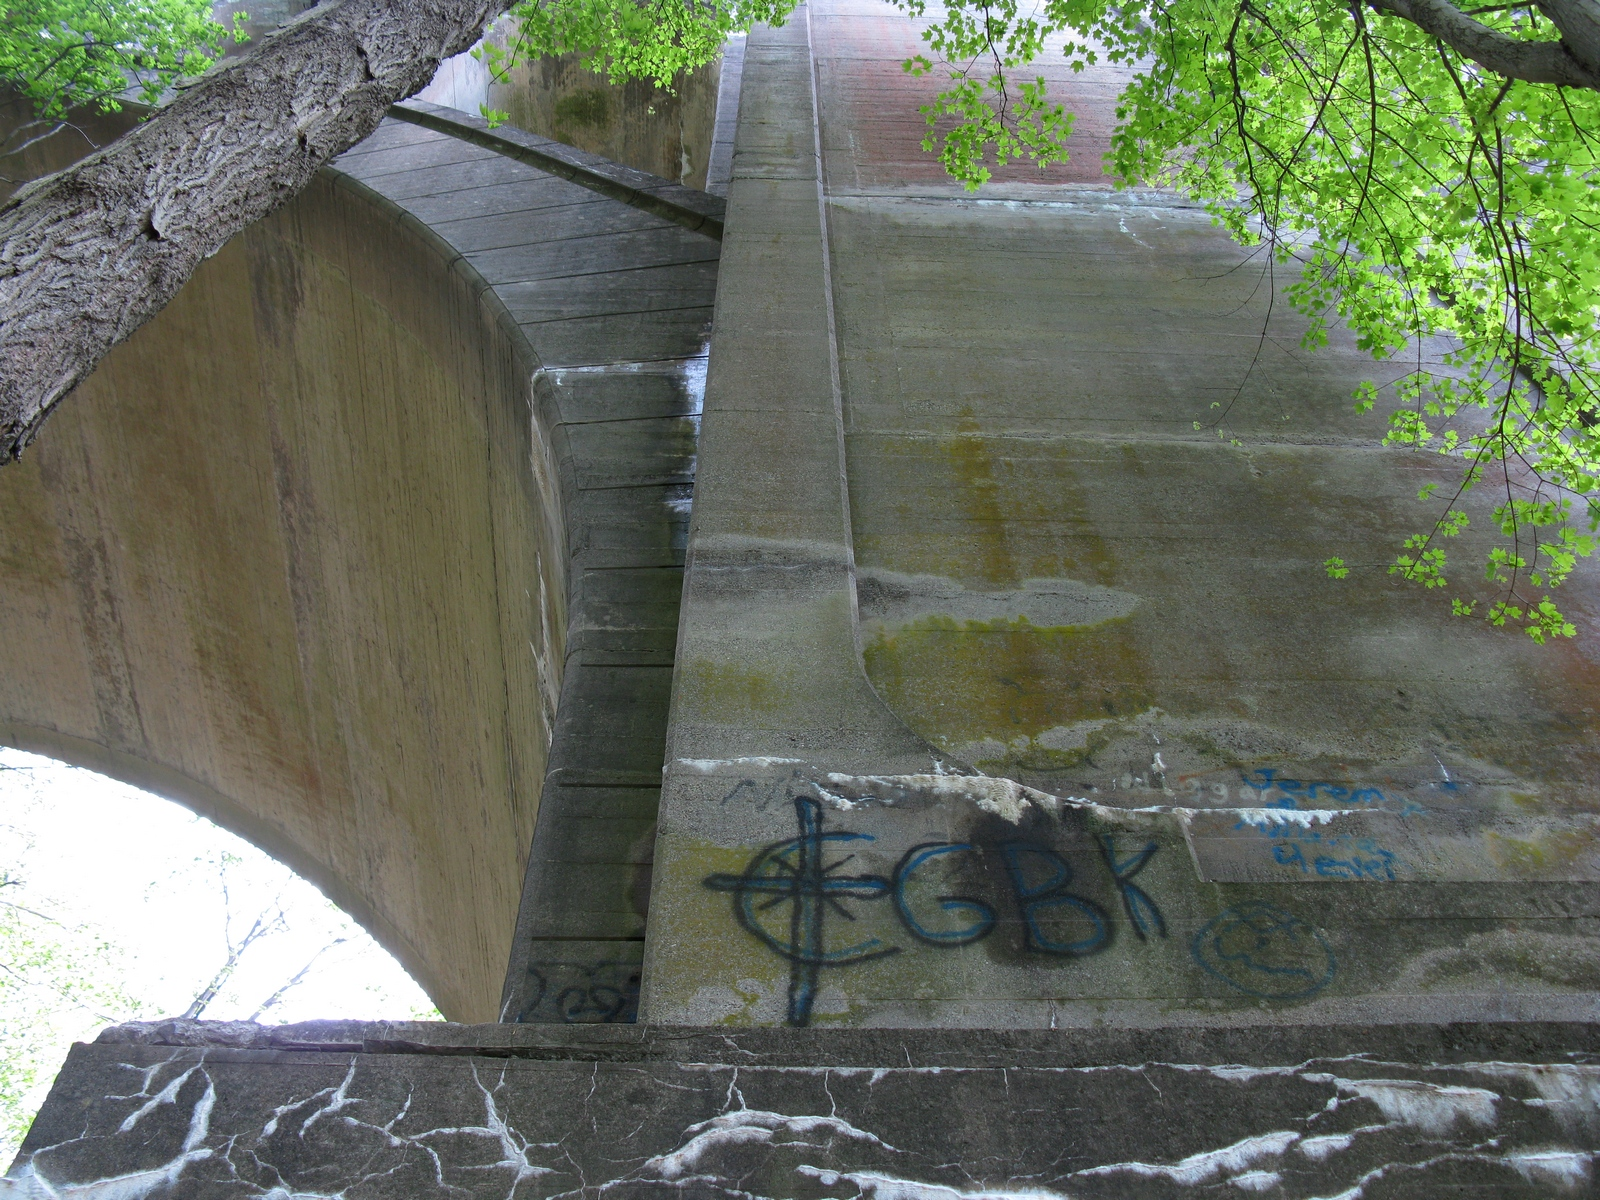 A pillar of the Paulinskill Viaduct on the west bank